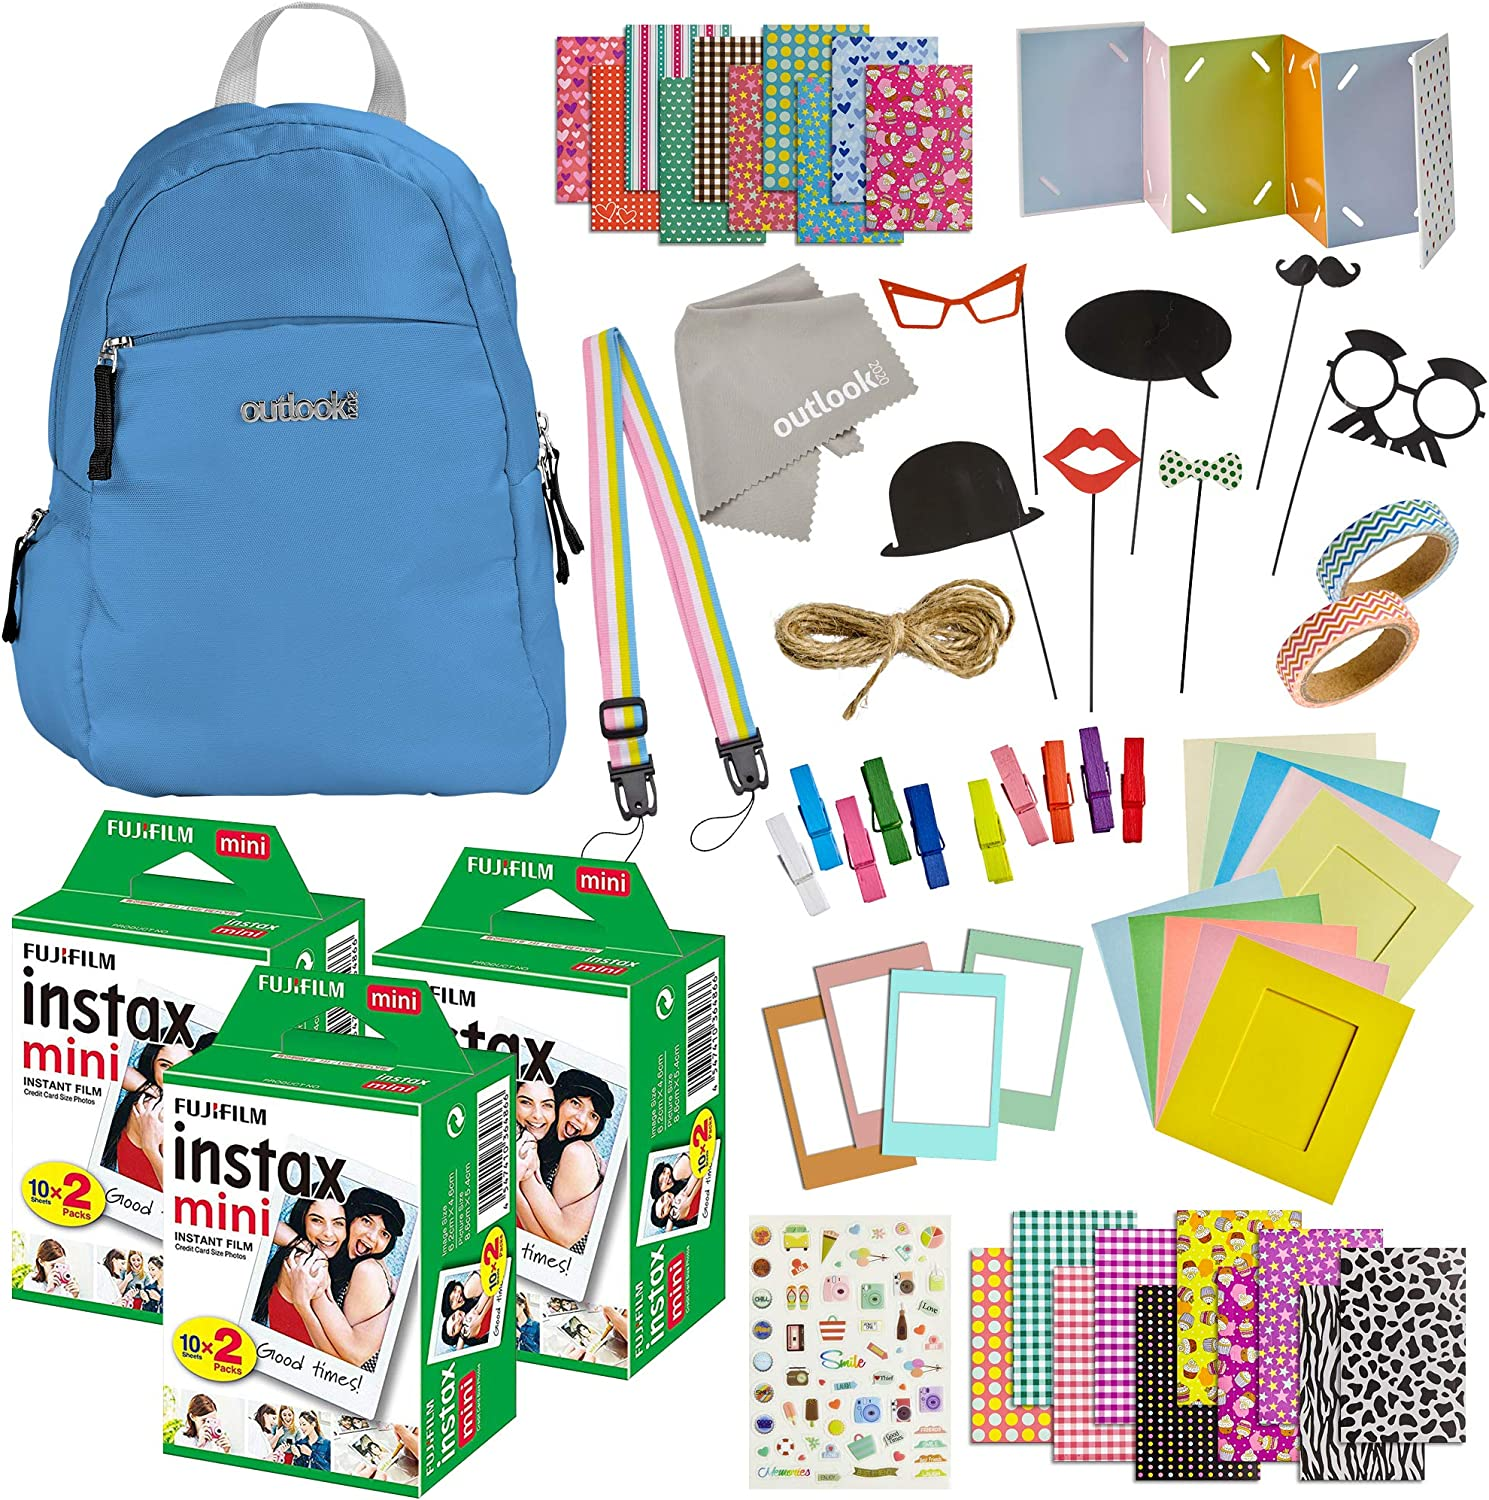 Lens Cleaning Cloth Stickers Backpack Shoulder Bag Photo Frames 100 Piece Instax Mini 9 Camera Accessories Washi Tape Album Strap Travel Kit Bundle 60 Sheets Instant Film Cobalt Blue